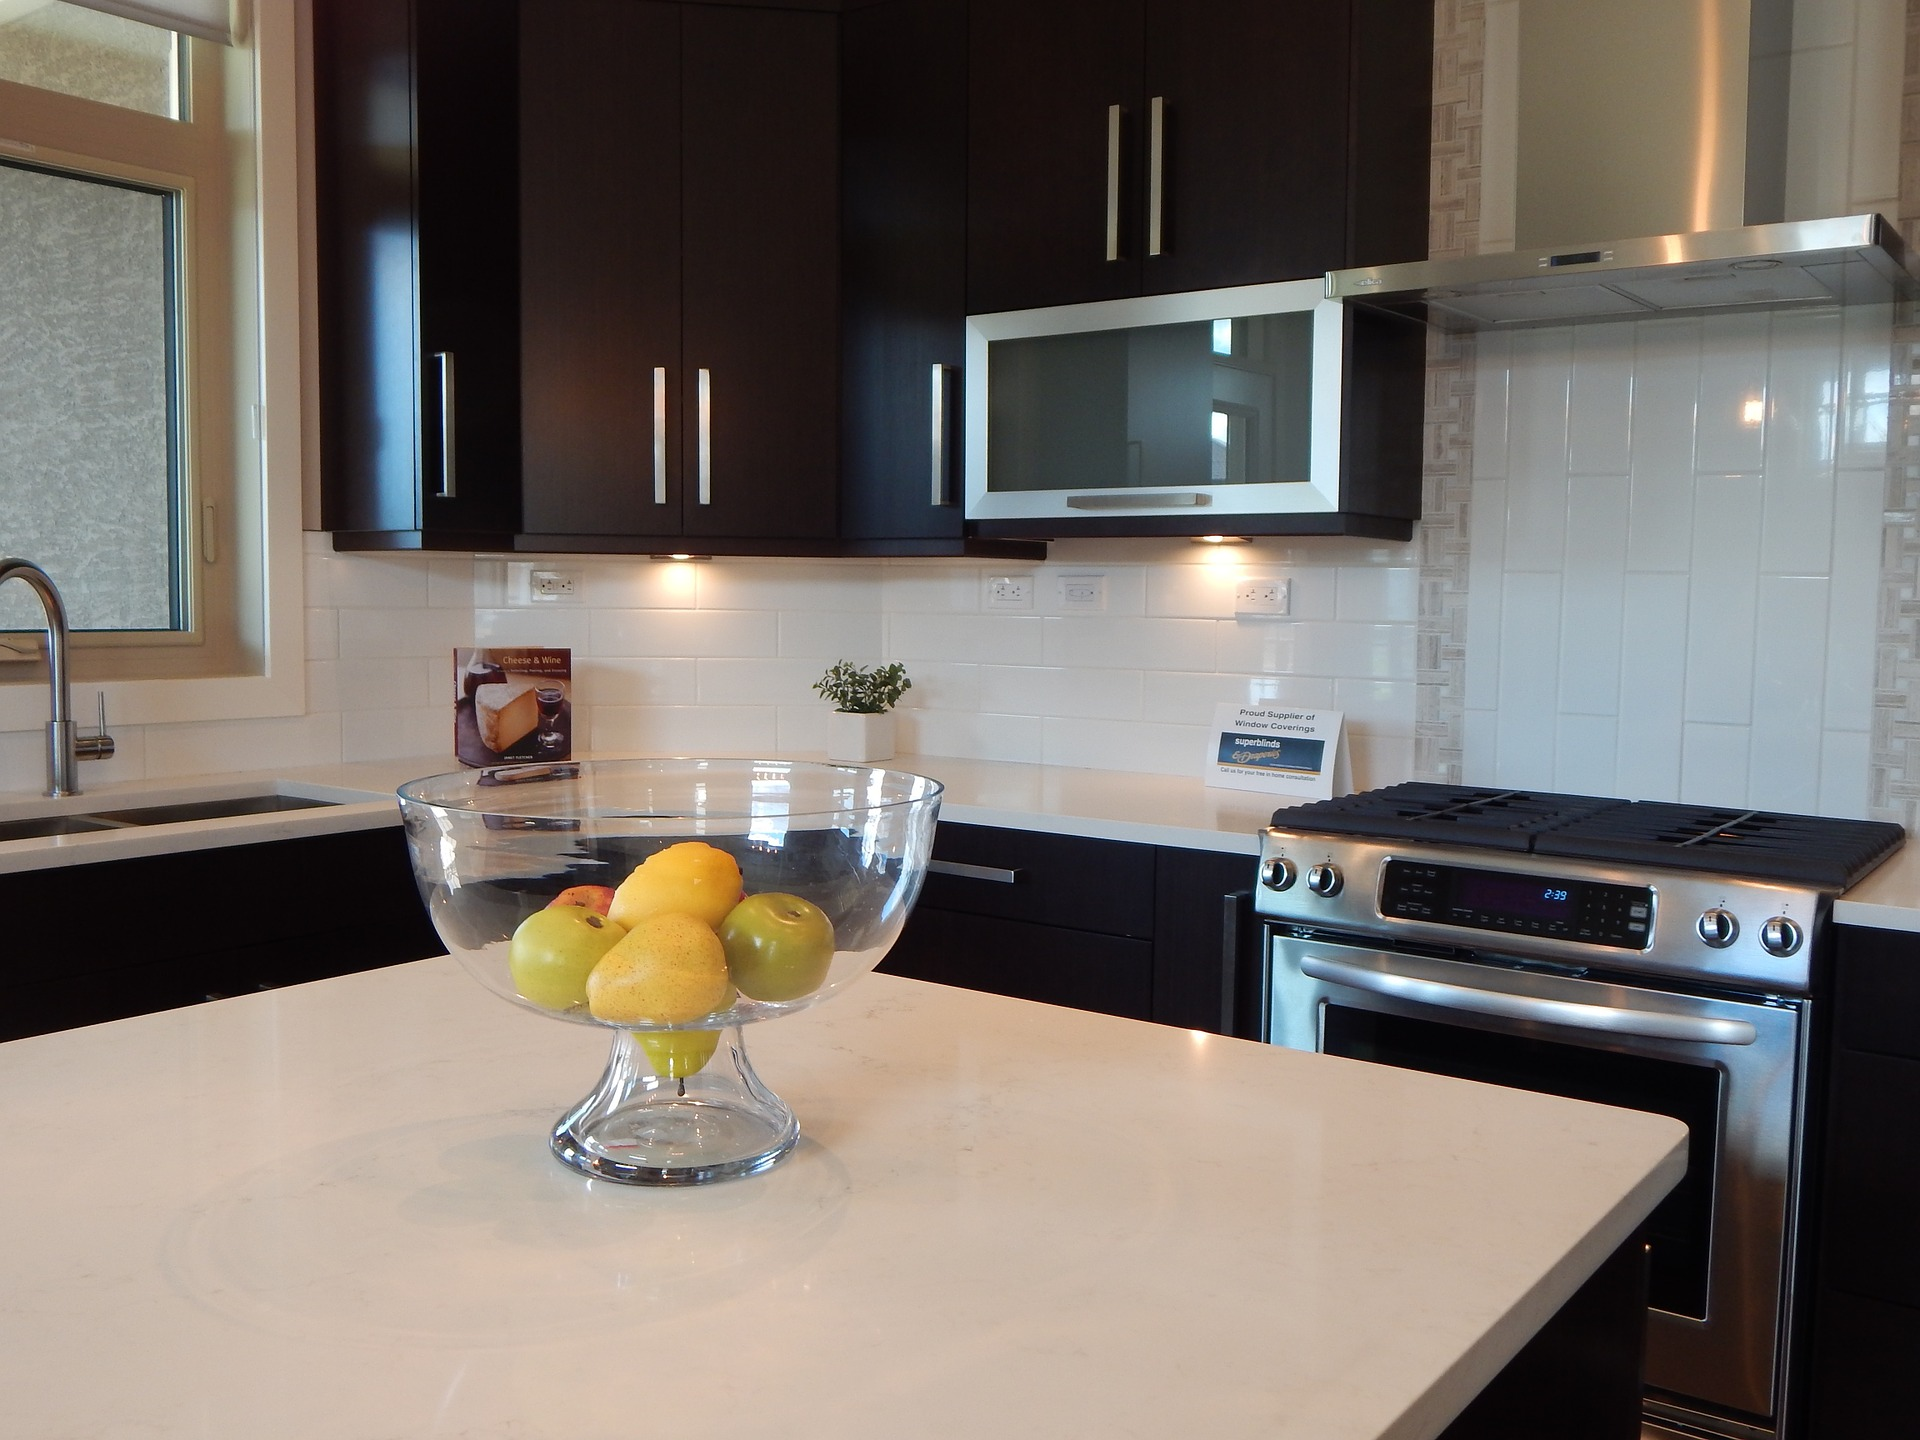 6 Ideas For Your Next Kitchen Renovation My Decorative